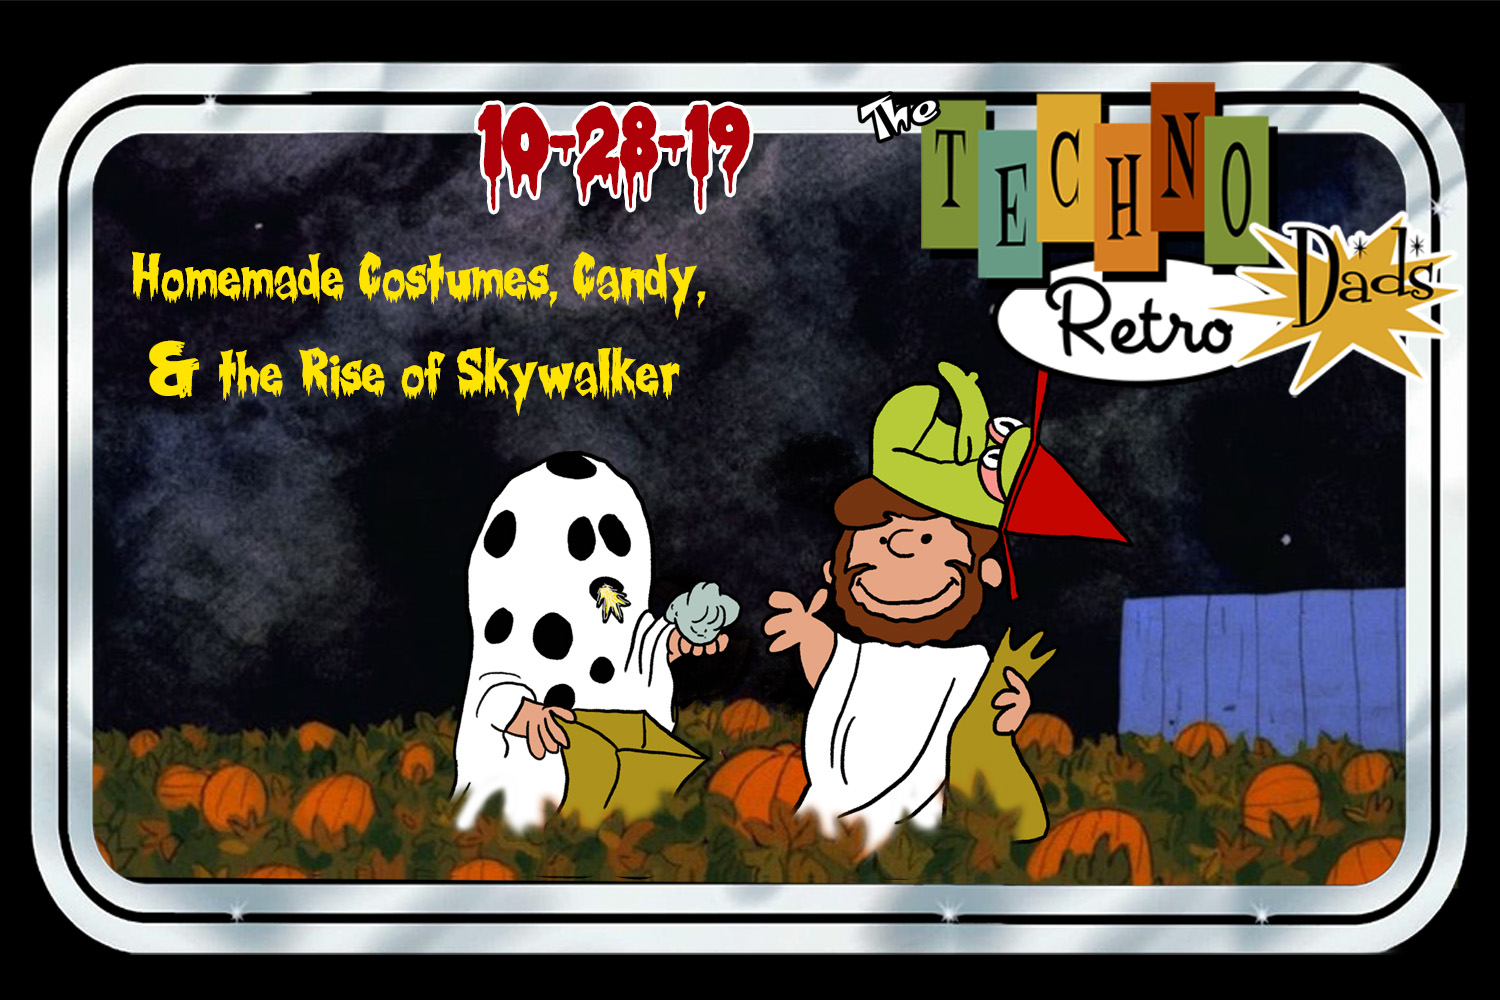 Trick-or-Treat with TechnoRetro Dads and friends